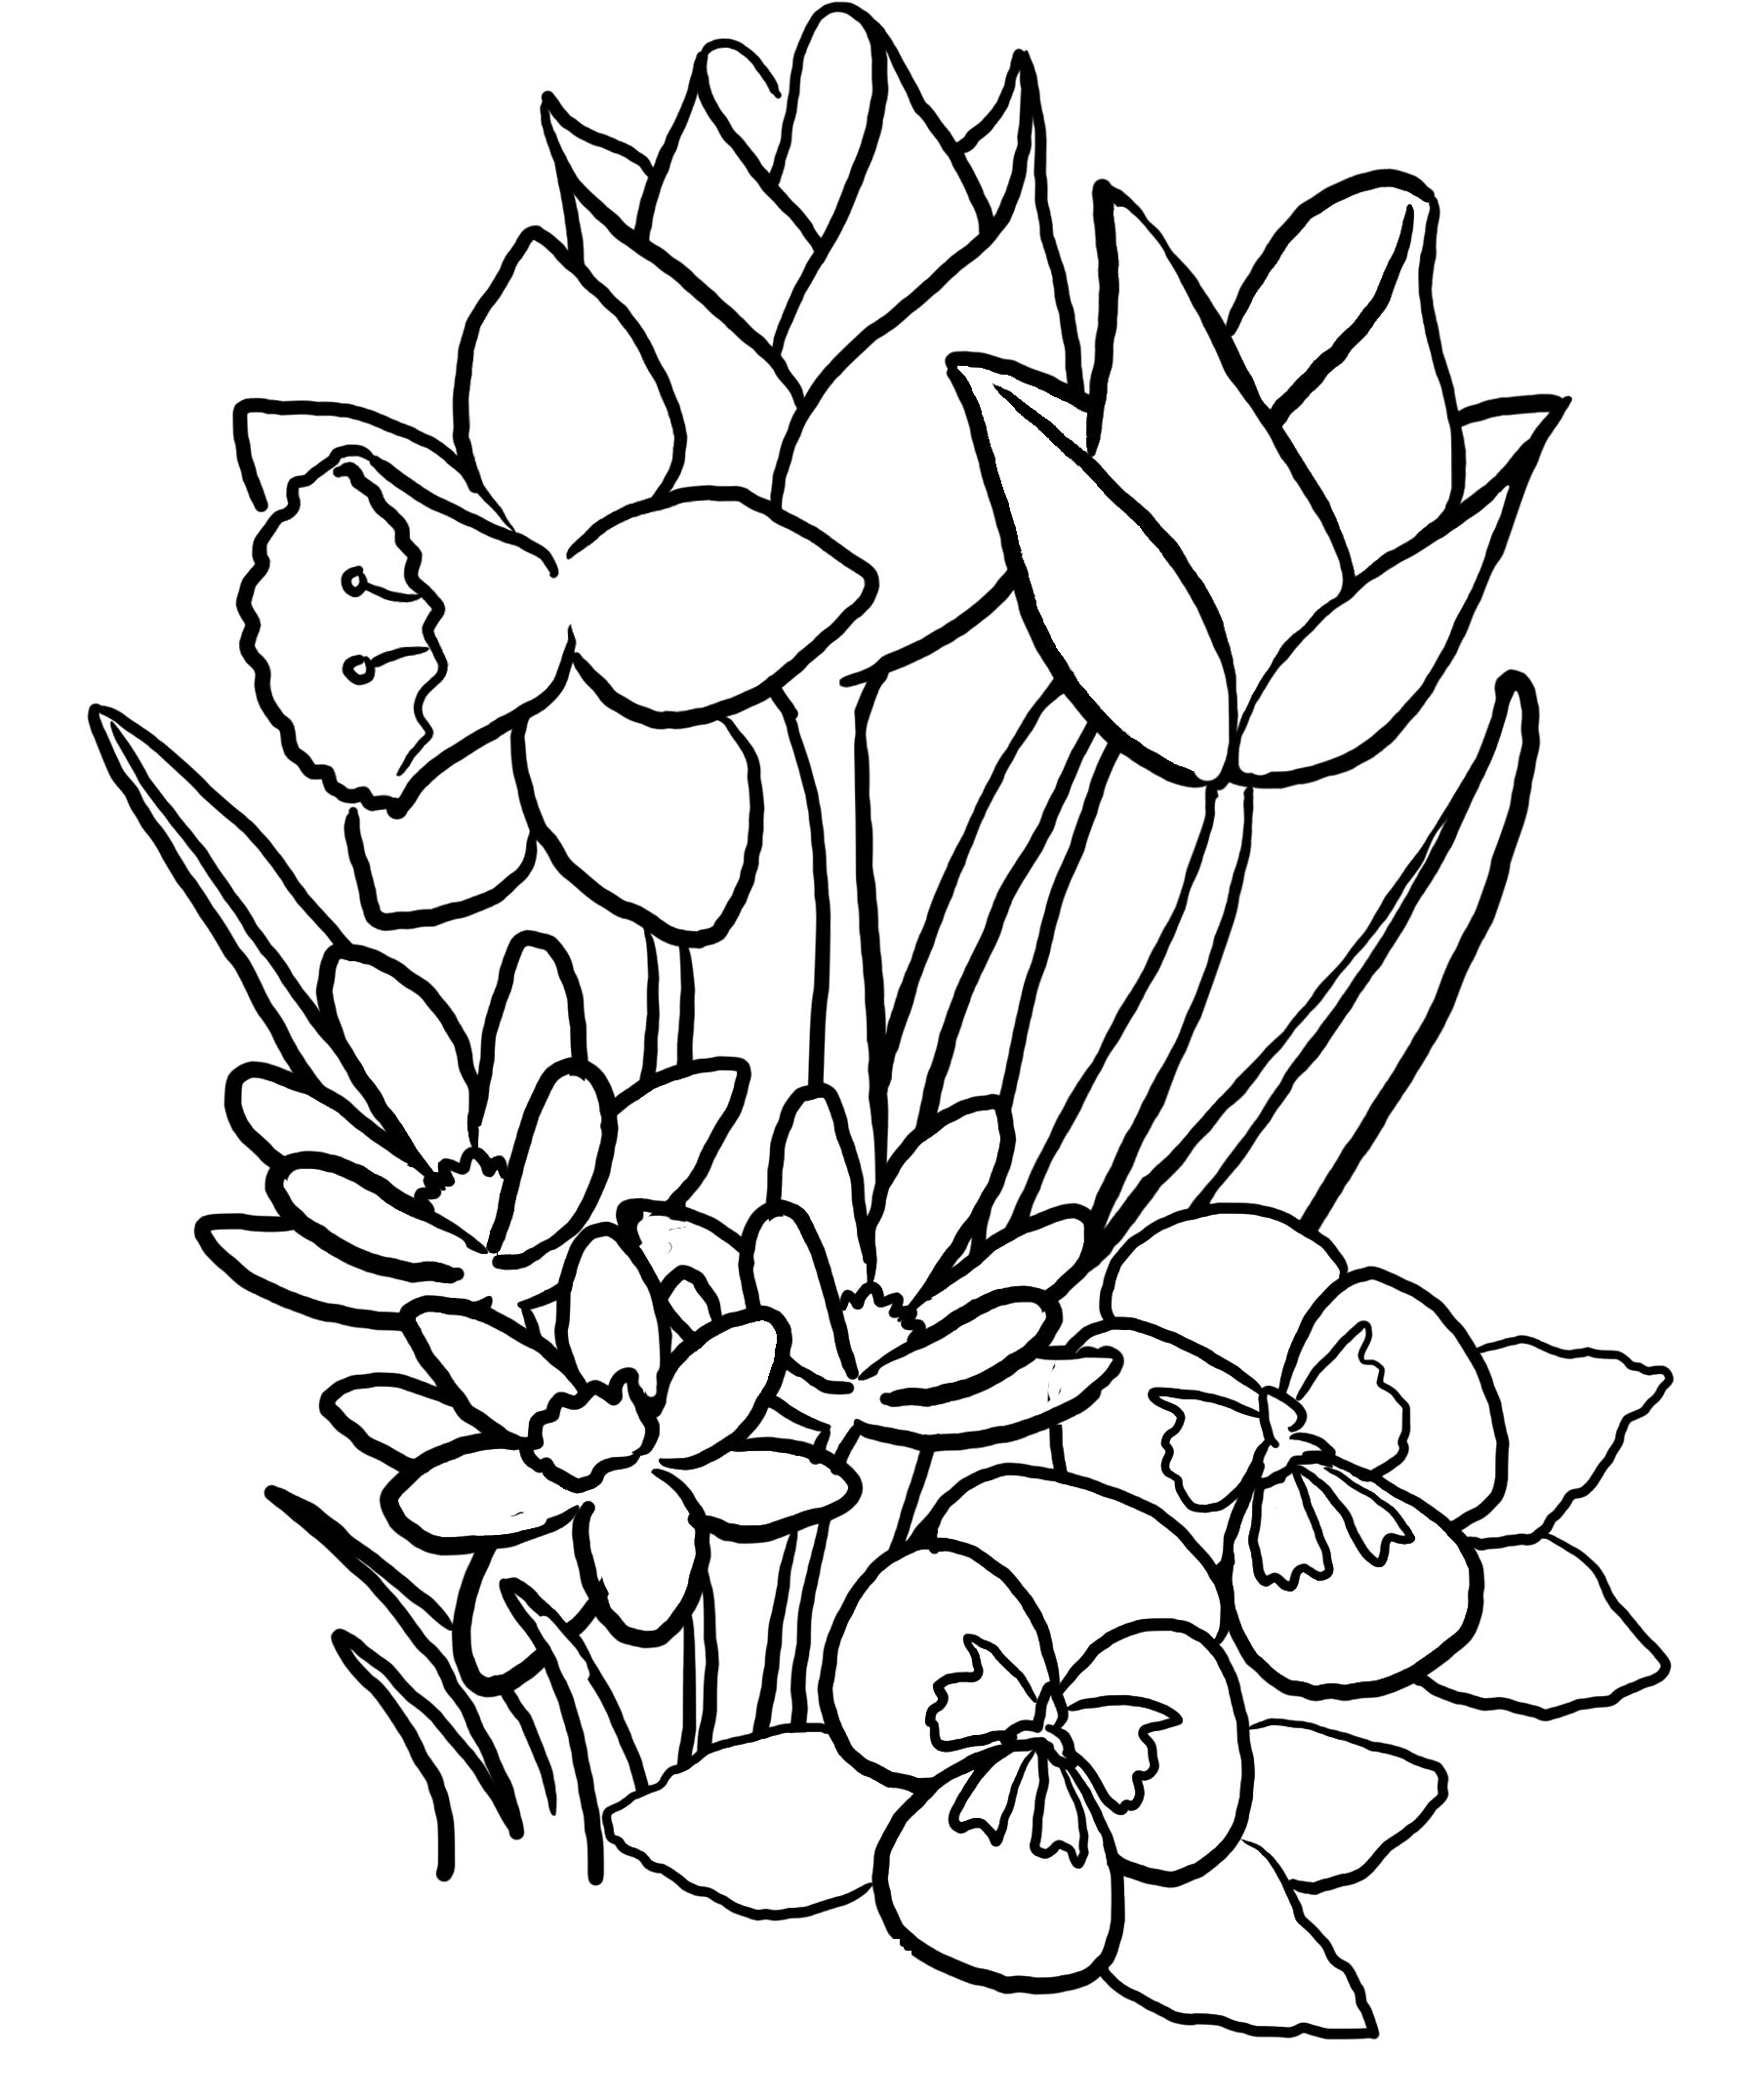 1785x2152 Vases Flowers In Vase Coloring Pages Flower Page Printable Sheets